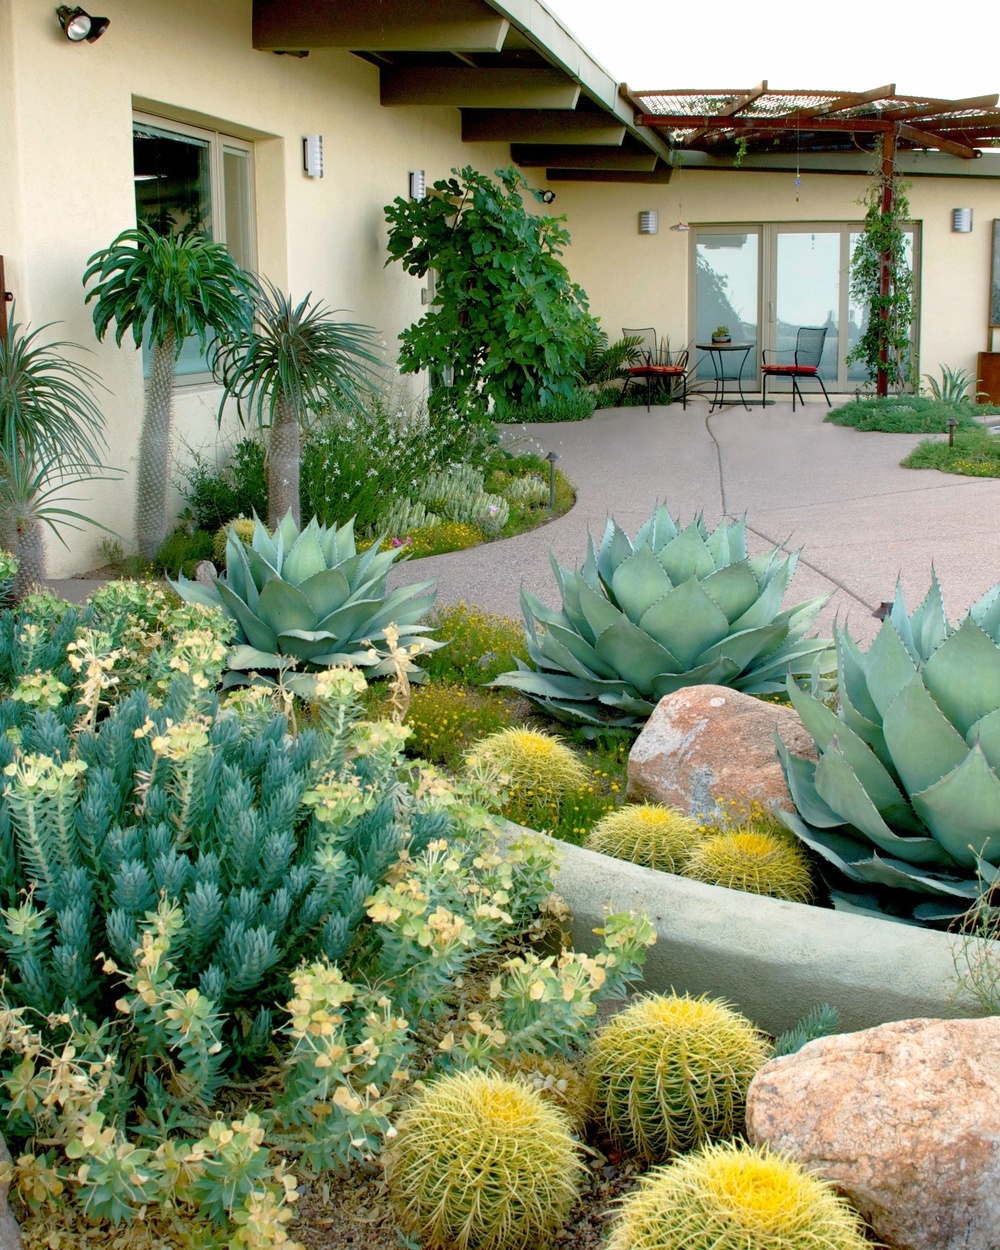 Xeriscaping gone wild!